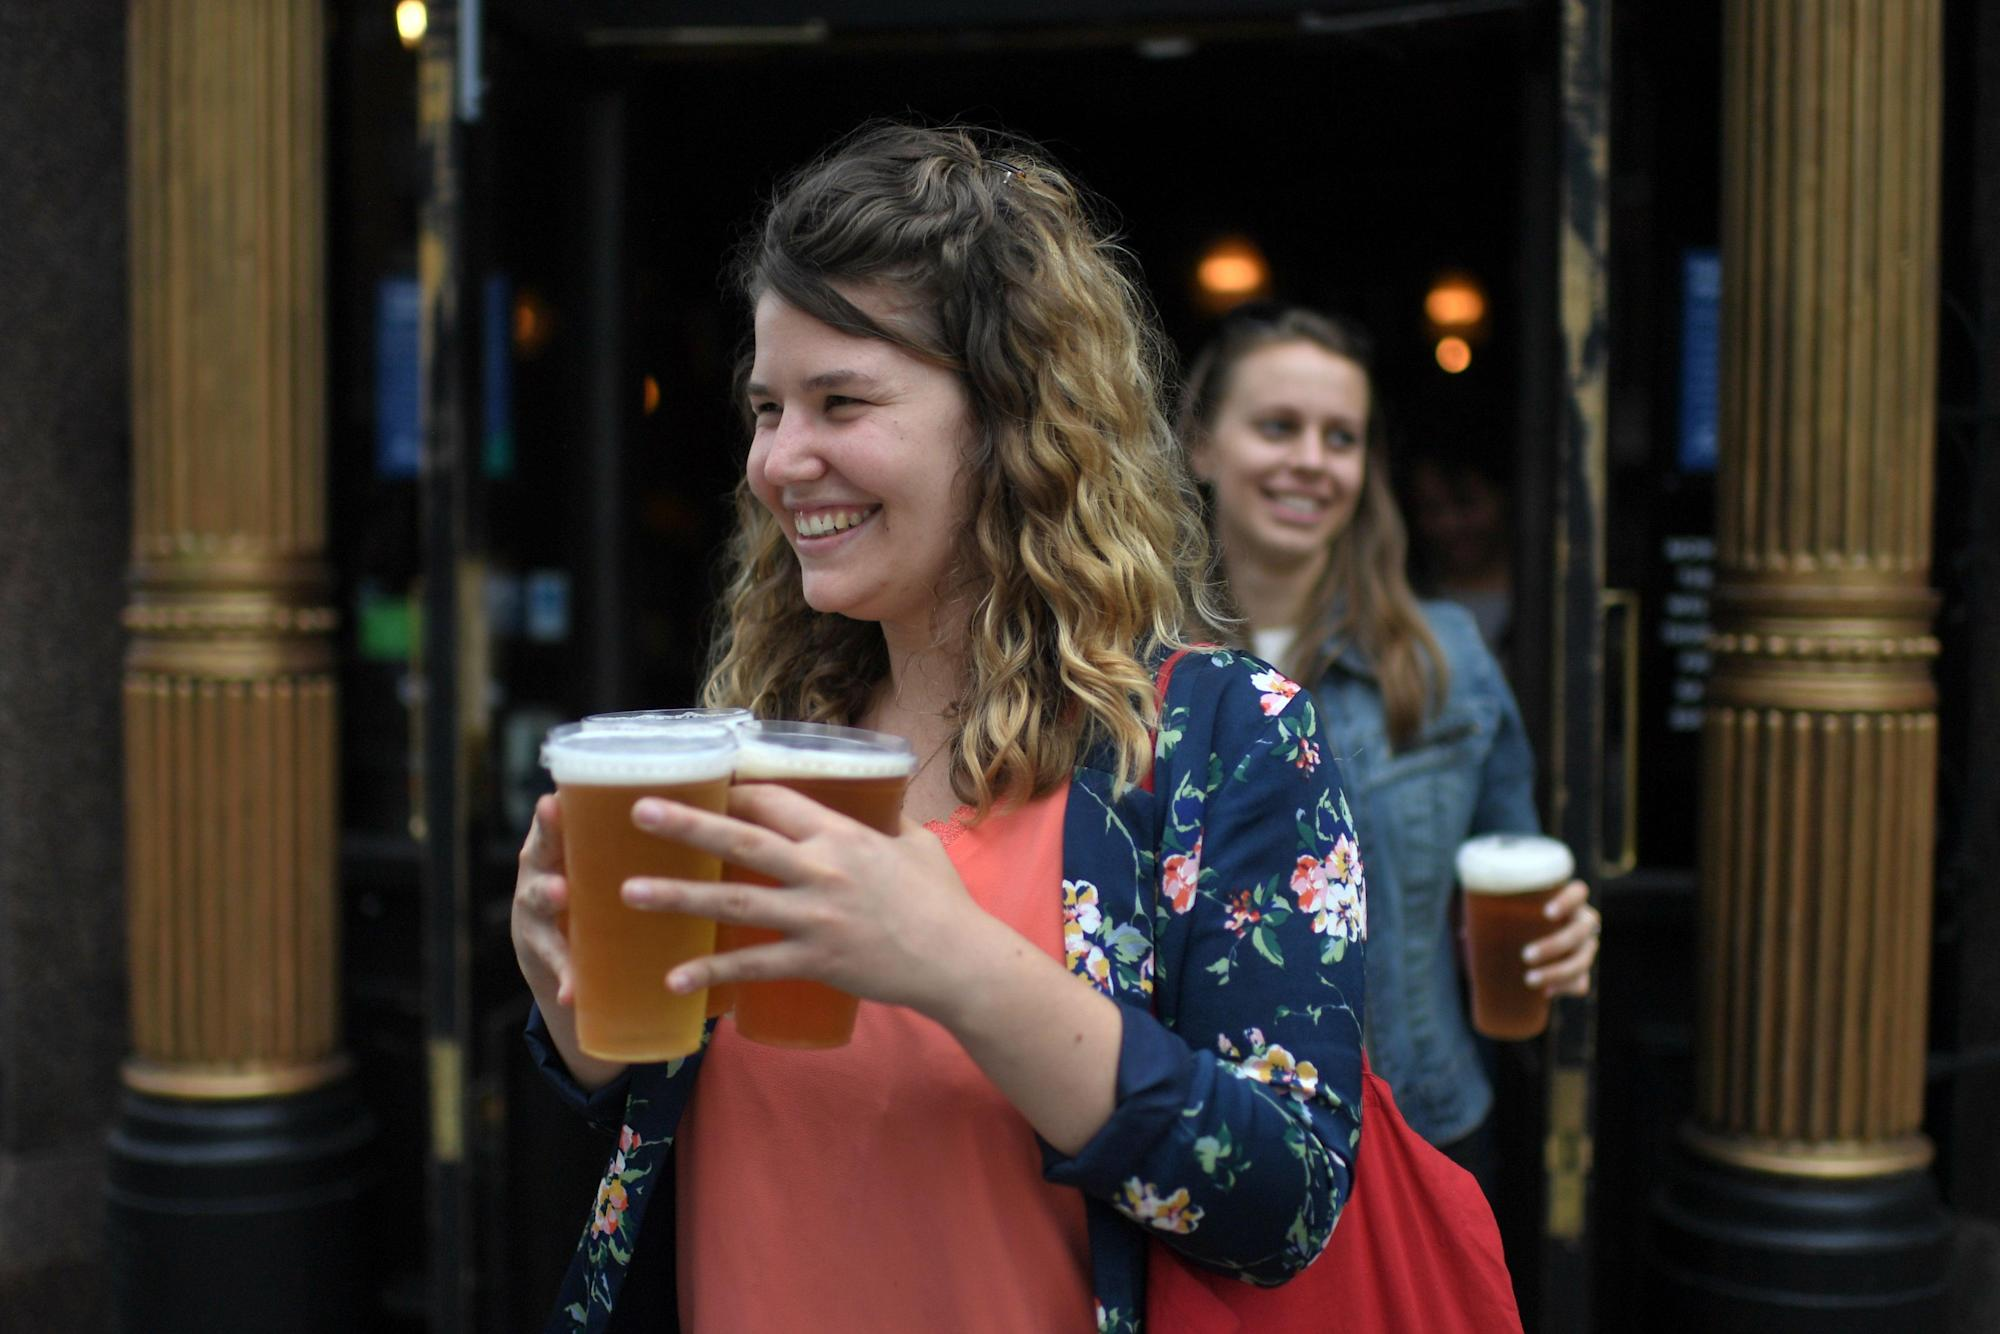 Takeaway pints may be allowed as legislation loophole uncovered